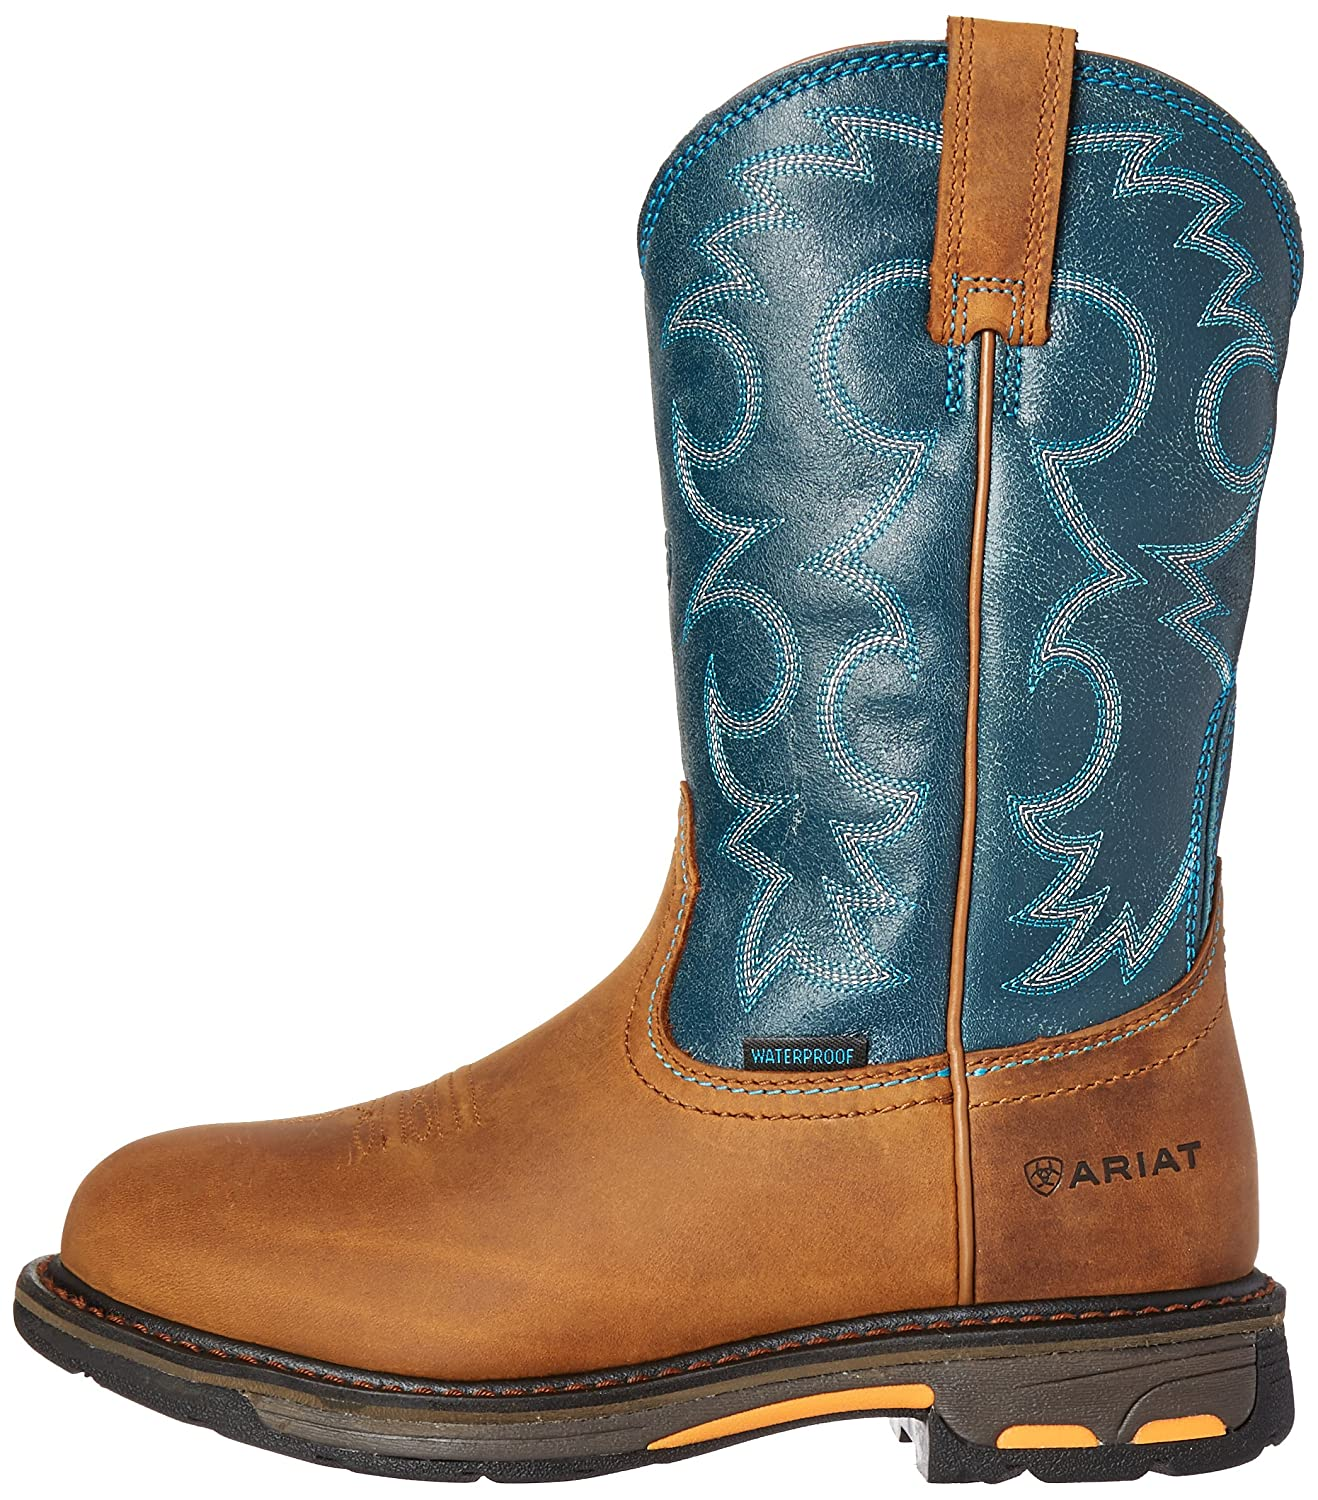 Ariat Women's Workhog H2O Work Boot B01BQT6TEO 11 B(M) US|Aged Bark/Topaz